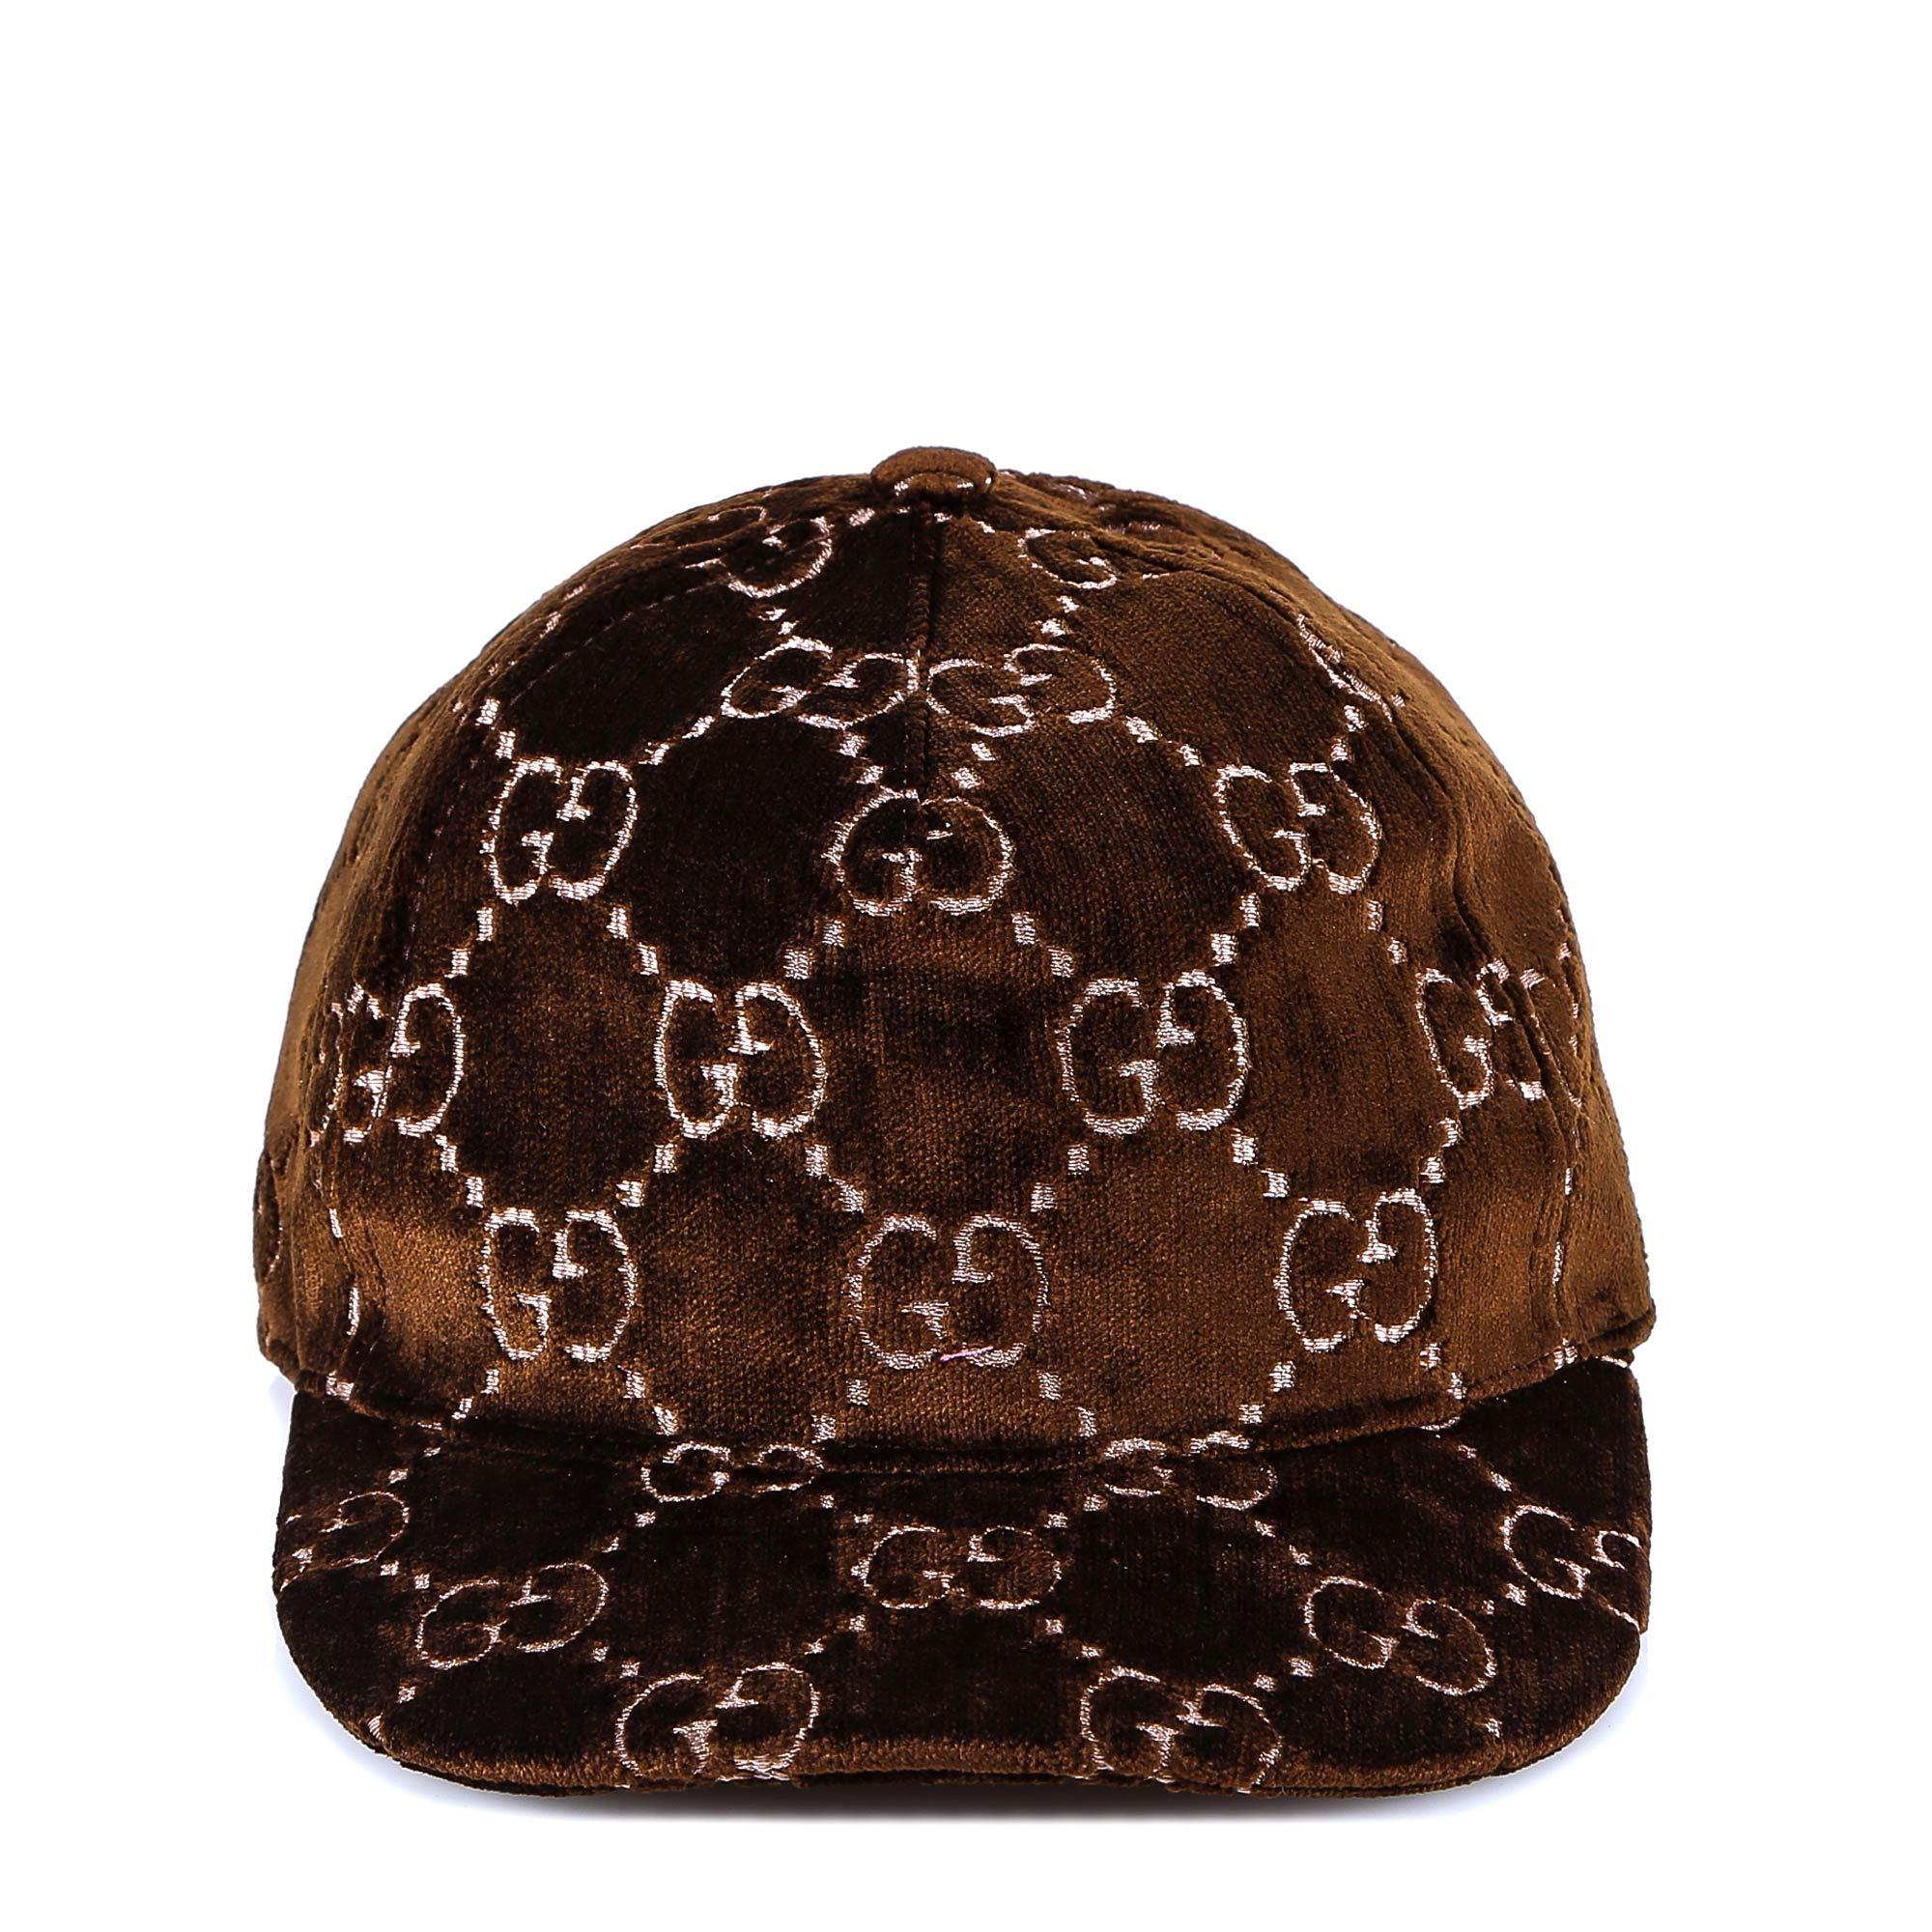 ec65eeae8fd Lyst - Gucci Gg Embroidered Velvet Cap in Brown - Save 42%